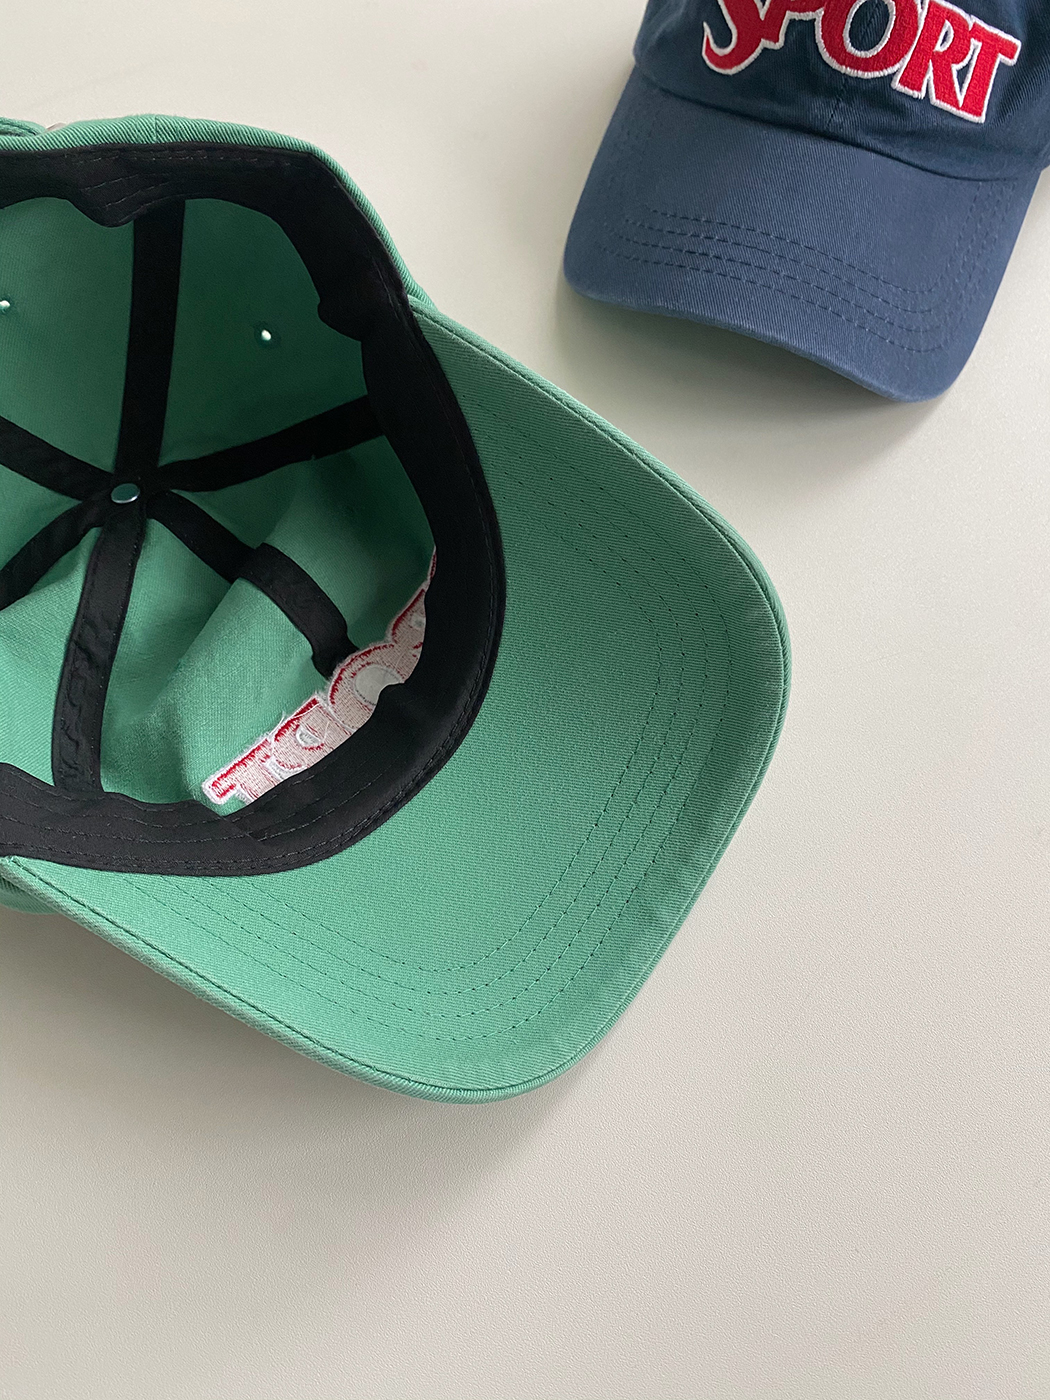 'SPORT' embroidered ball cap